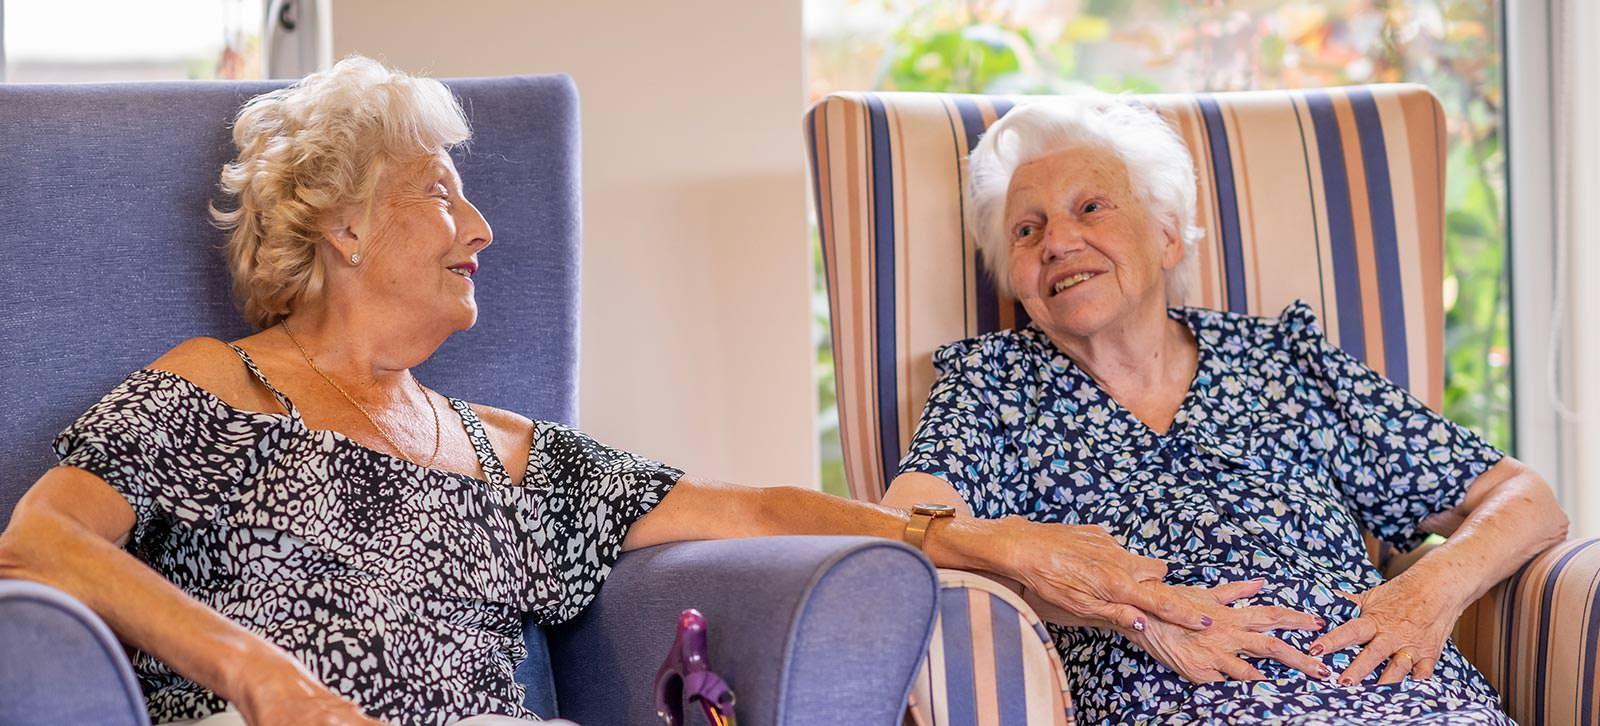 Two ladies chatting in armchairs